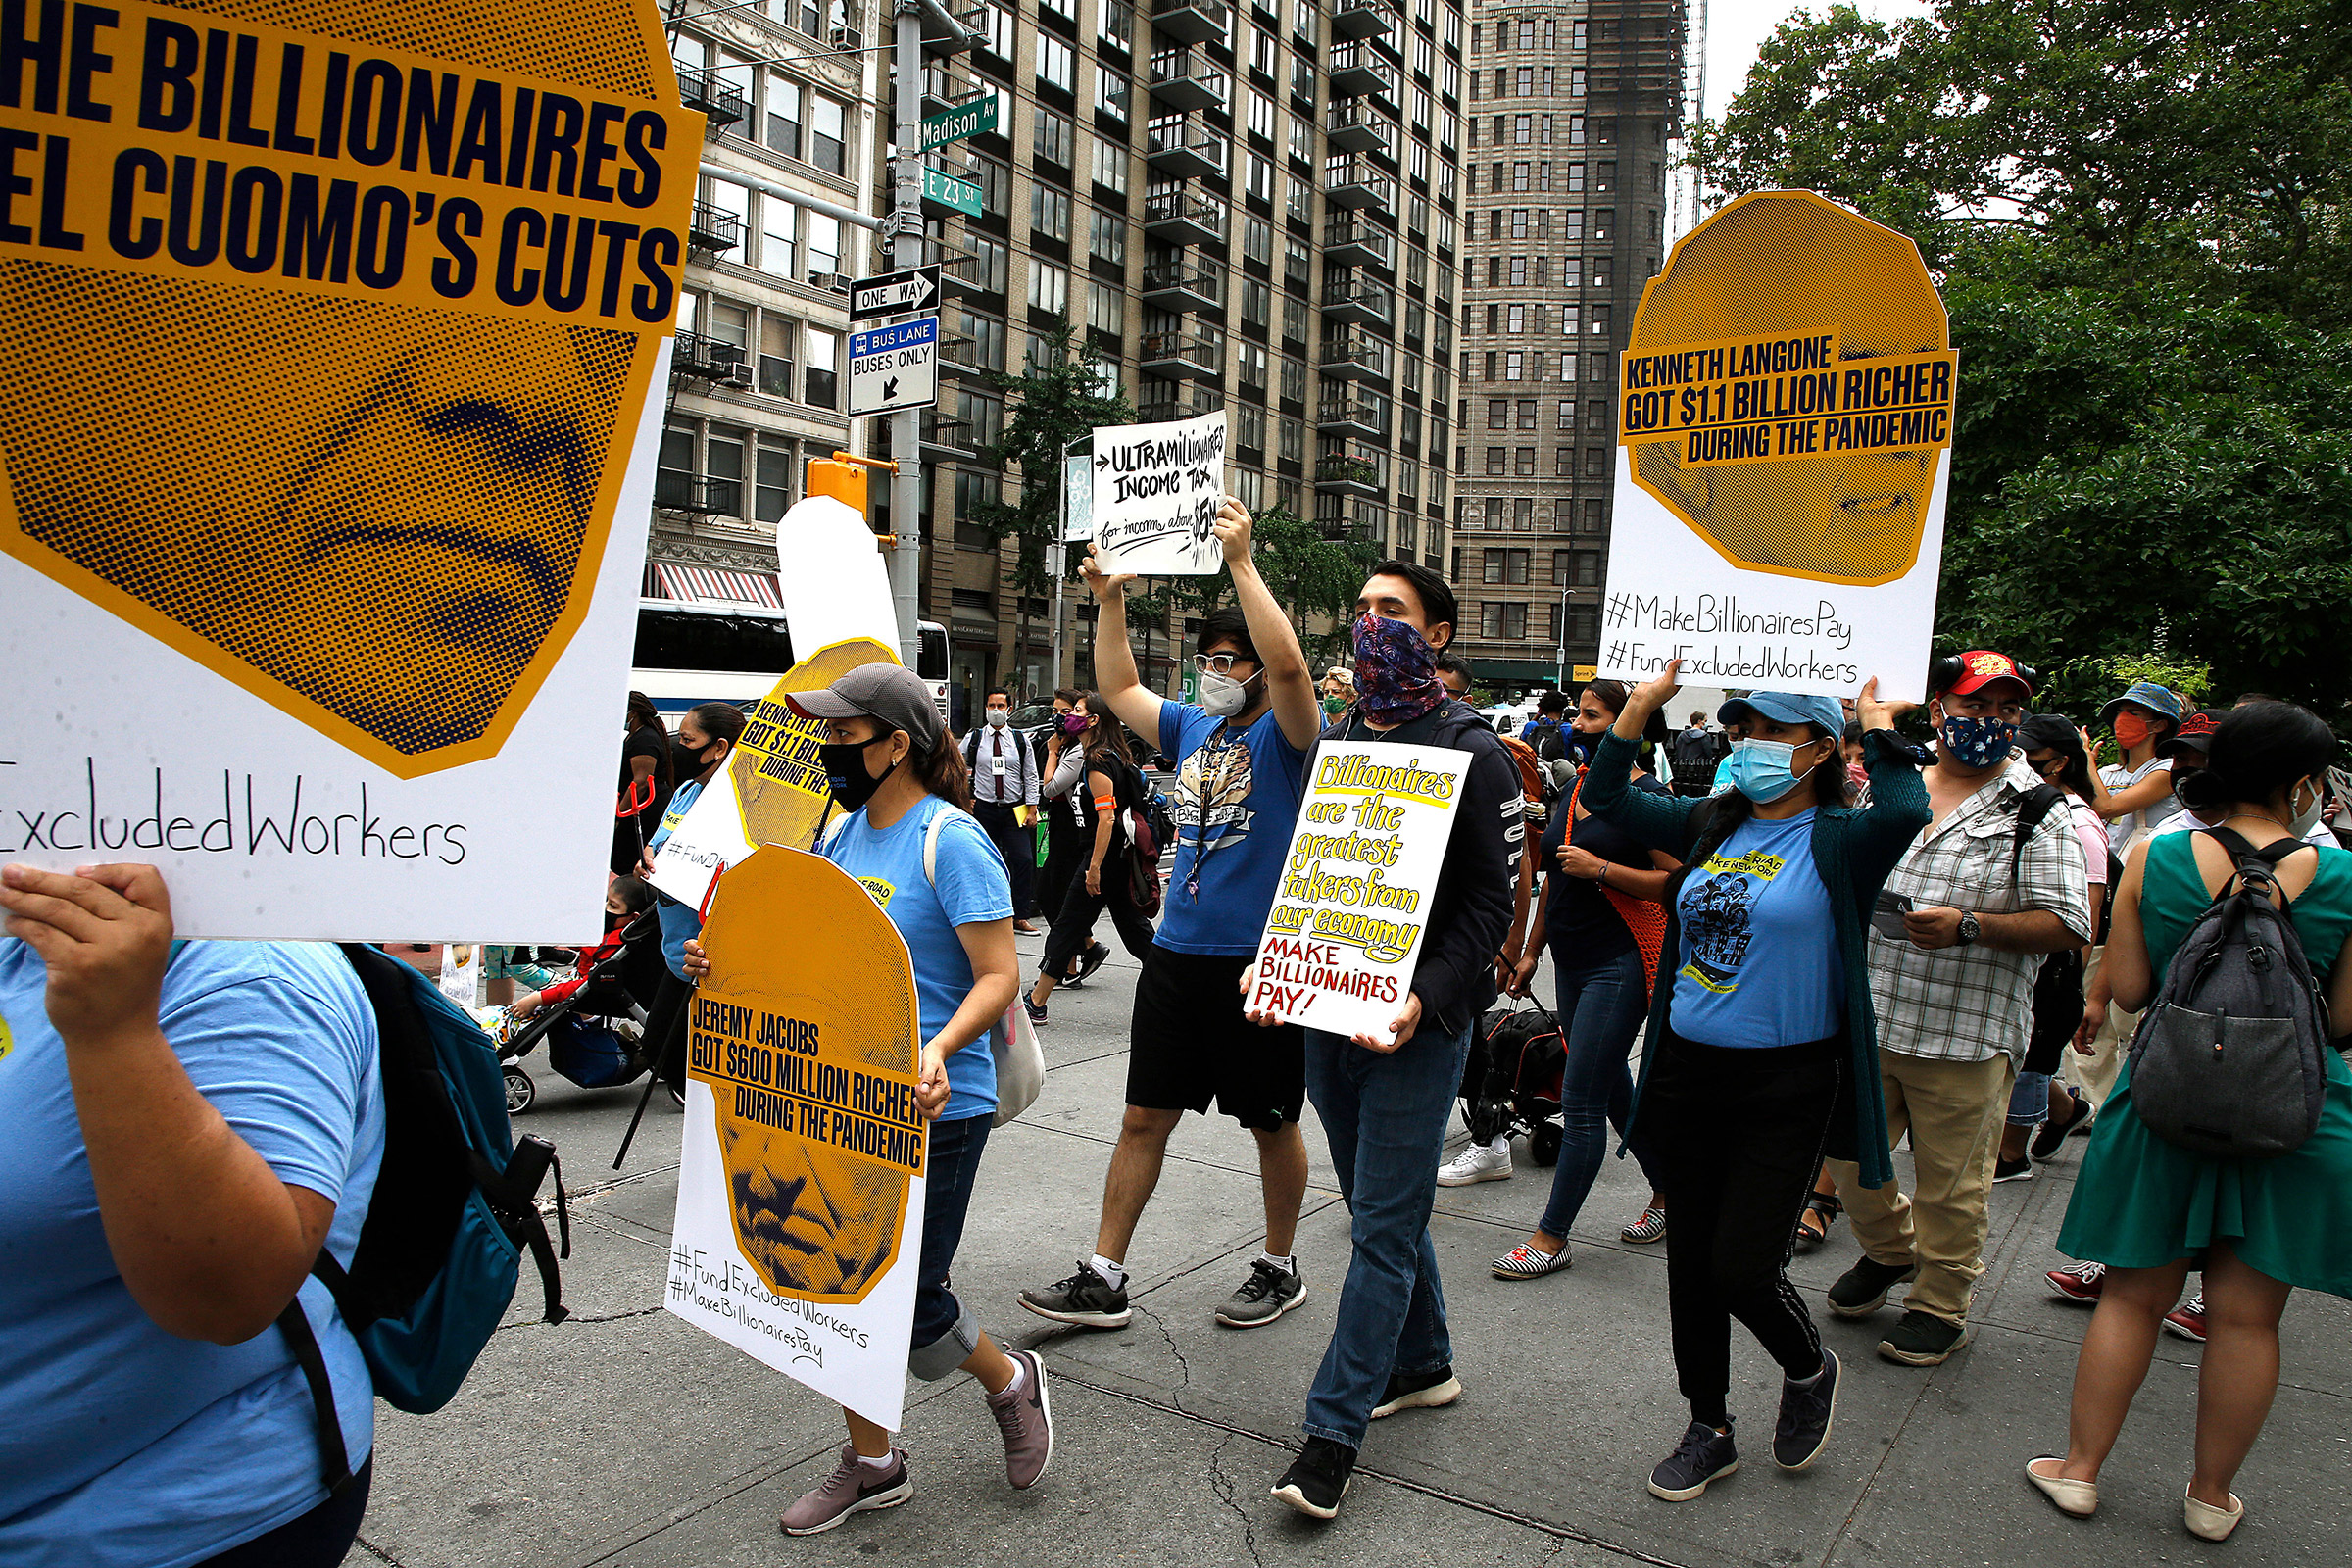 """People demonstrate during the """"March on Billionaires"""" to raise attention to the inequity in income among the wealthy and the working class in New York City on July 17, 2020."""